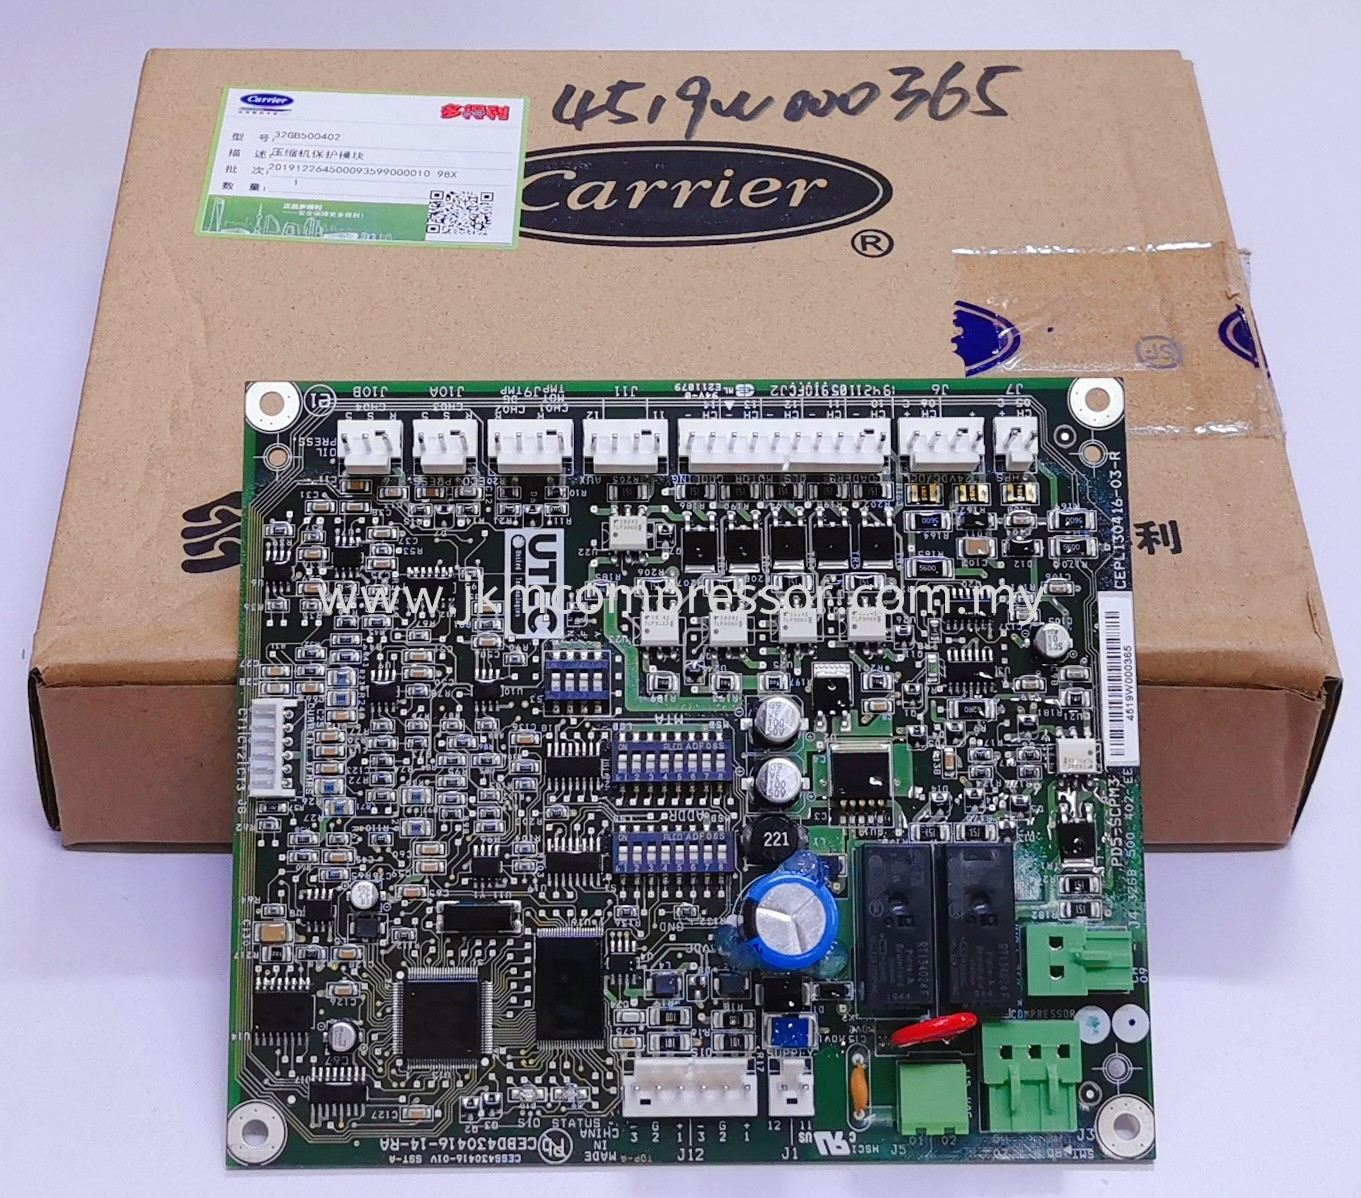 32GB500402-EE - CARRIER (SCPM) SCREW COMPRESSOR PROTECTION MODULE BOARD ; SCPM BOARD